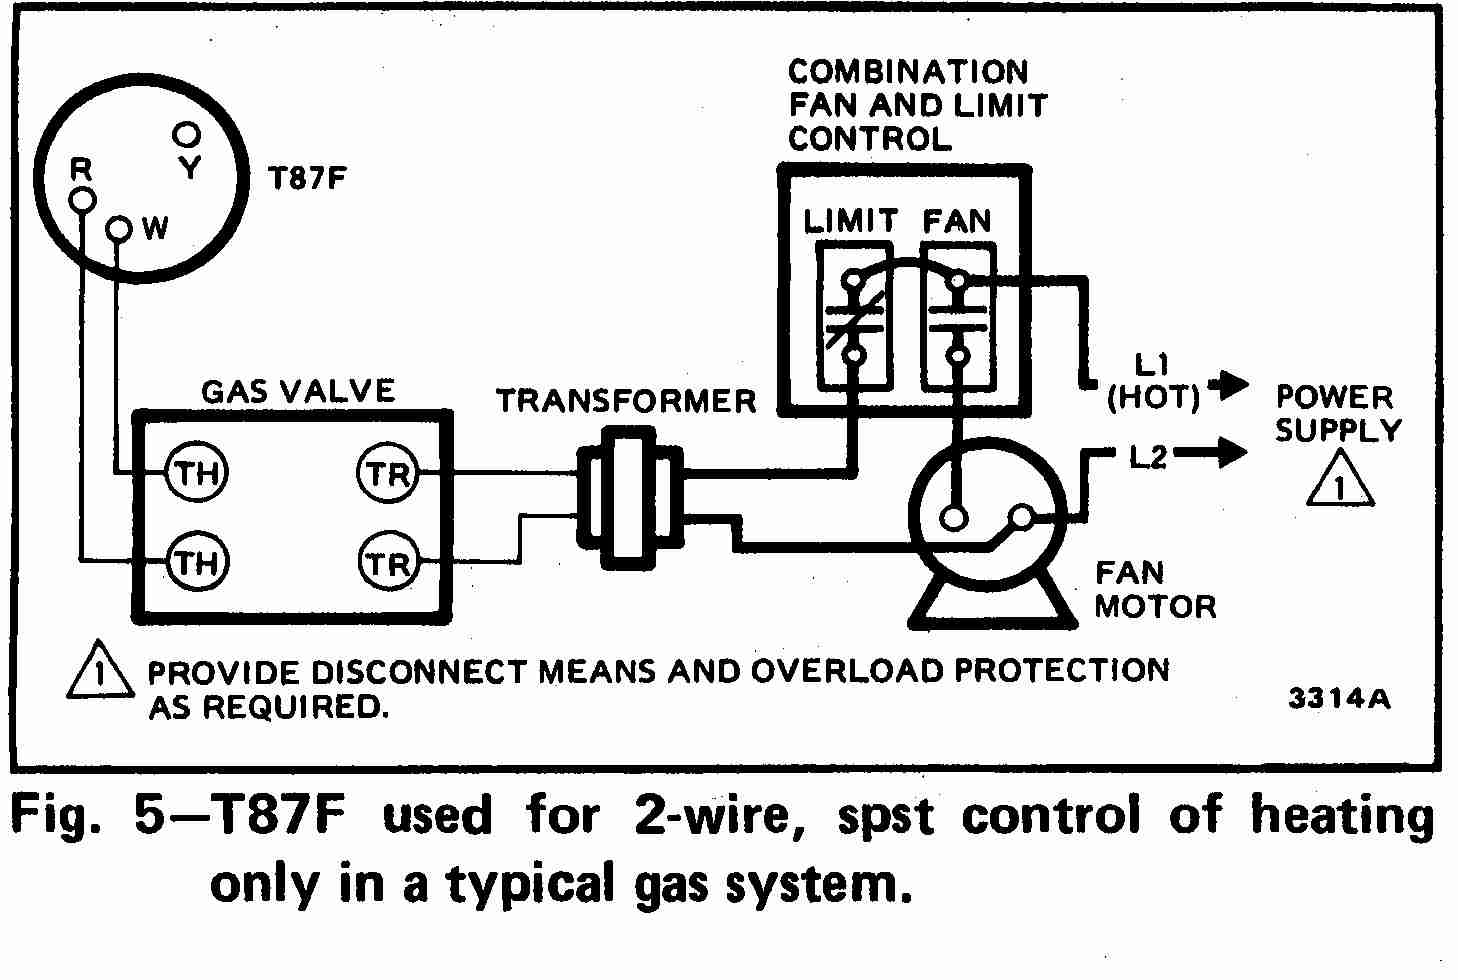 US5409373 furthermore 535332 Thermostat Wiring Ritetemp 6020 Hyperion Tam4 Trane Heat Pump besides Fleetwood Rv Wiring Schematics as well Heater Mh12t Gasfired Infrared Portable Heater Parts C 197733 197735 282761 as well Root Zone Heating Systems For Greenhouses. on home furnace wiring diagram